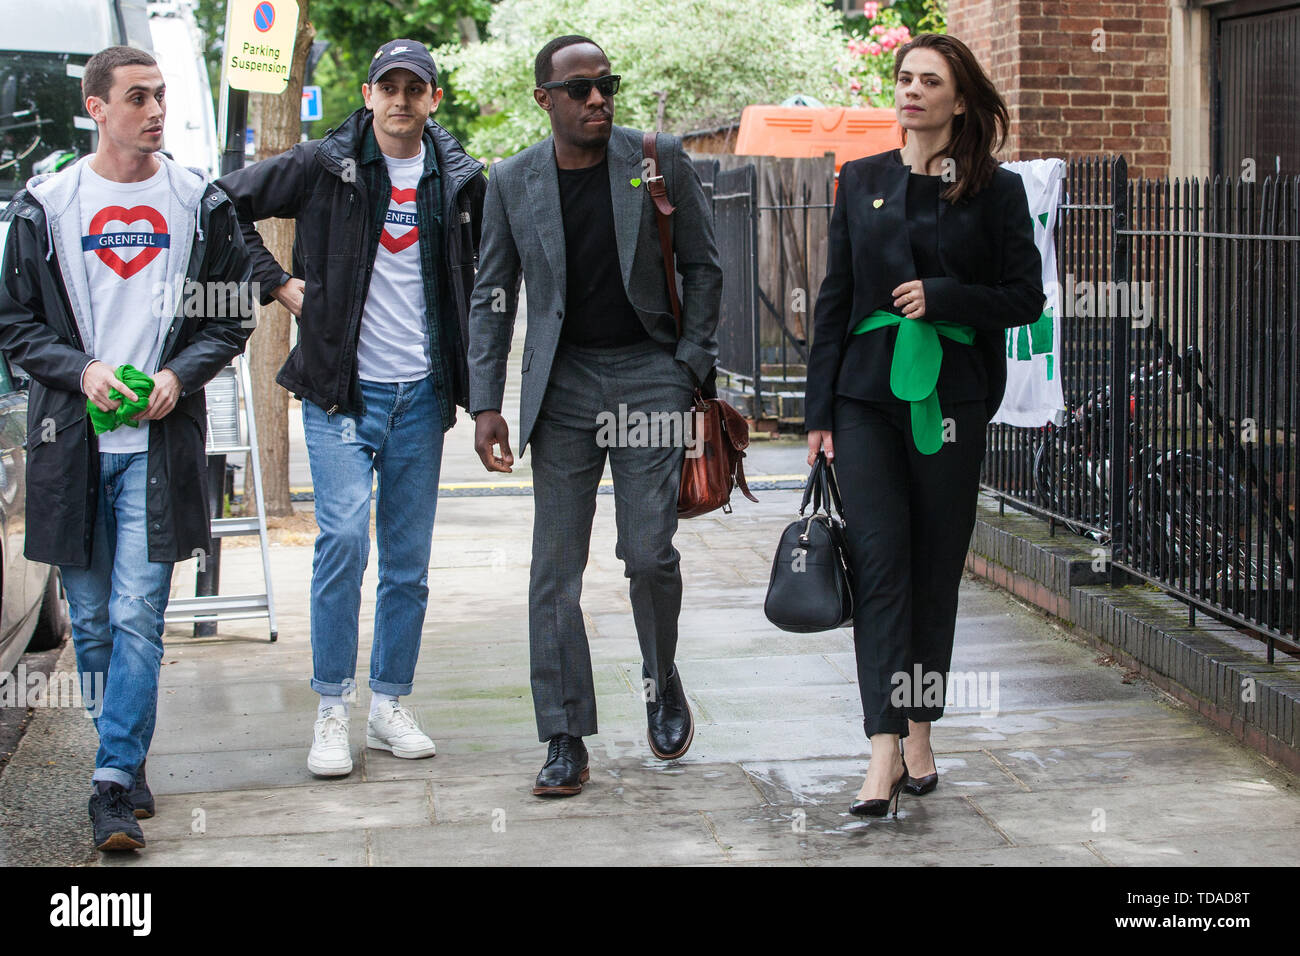 London, UK. 14 June, 2019. Guests arrive to attend a memorial service at St Helen's Church to mark the second anniversary of the Grenfell Tower fire on 14th June 2017 in which at least 72 people died and over 70 were injured. Credit: Mark Kerrison/Alamy Live News - Stock Image